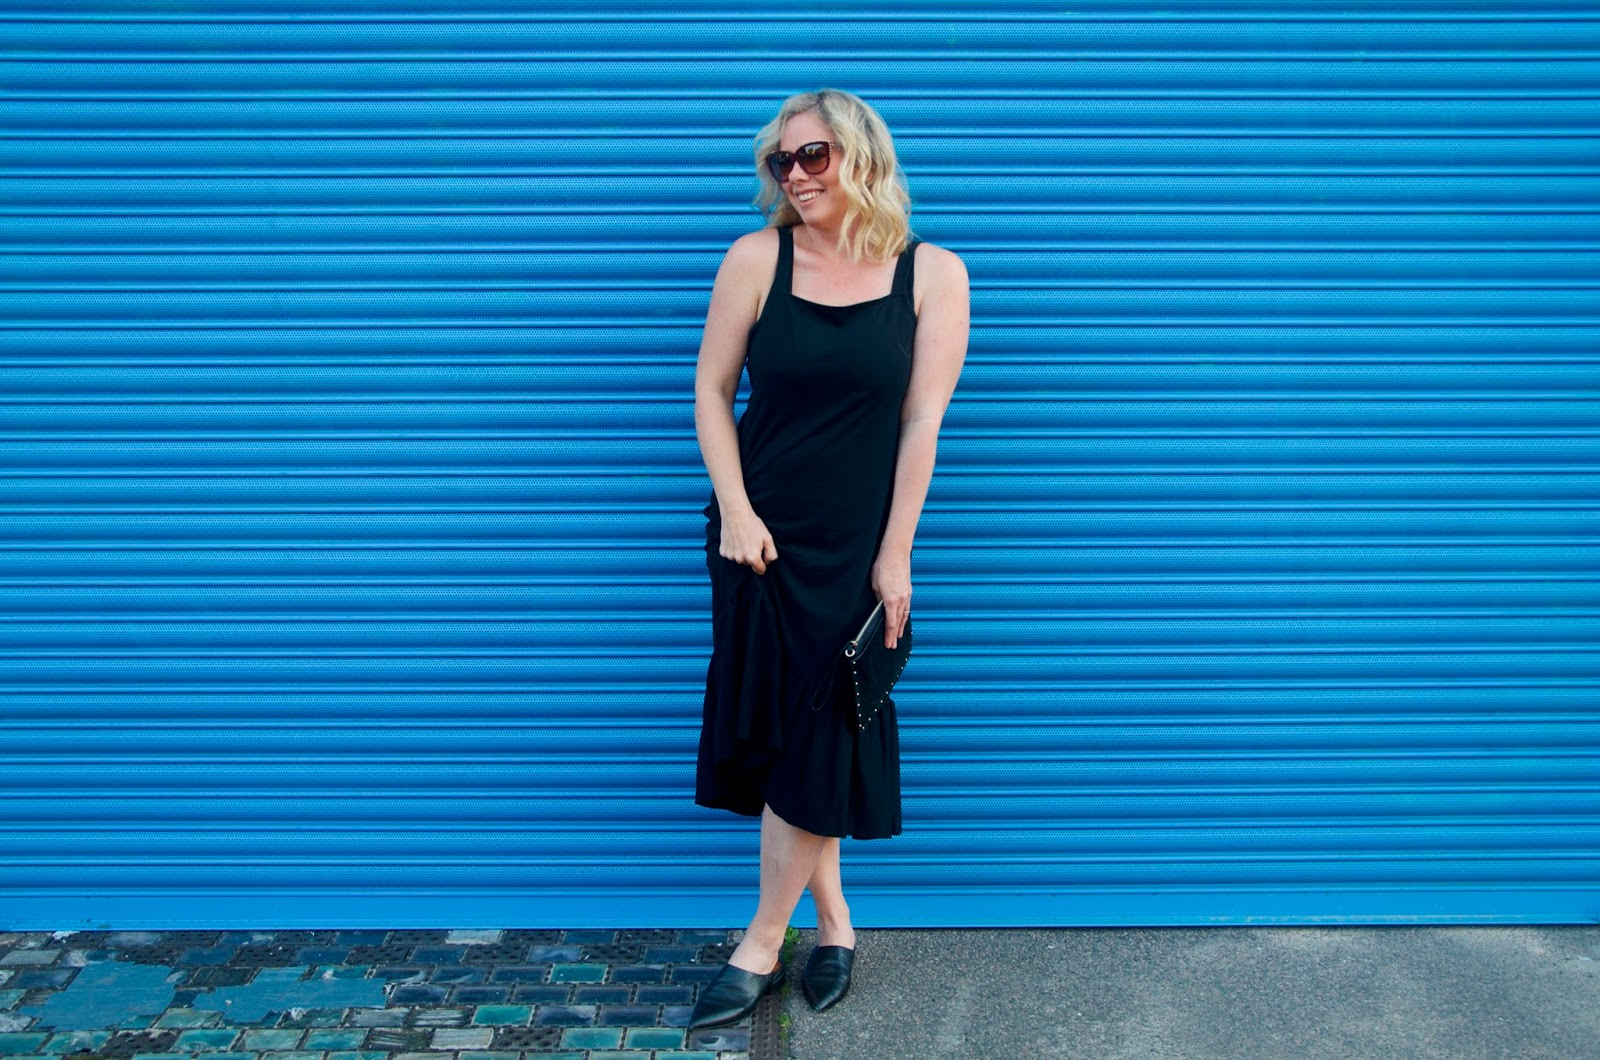 Black midi dress, black mules, black clutch, burgundy sunglasses and blue wall